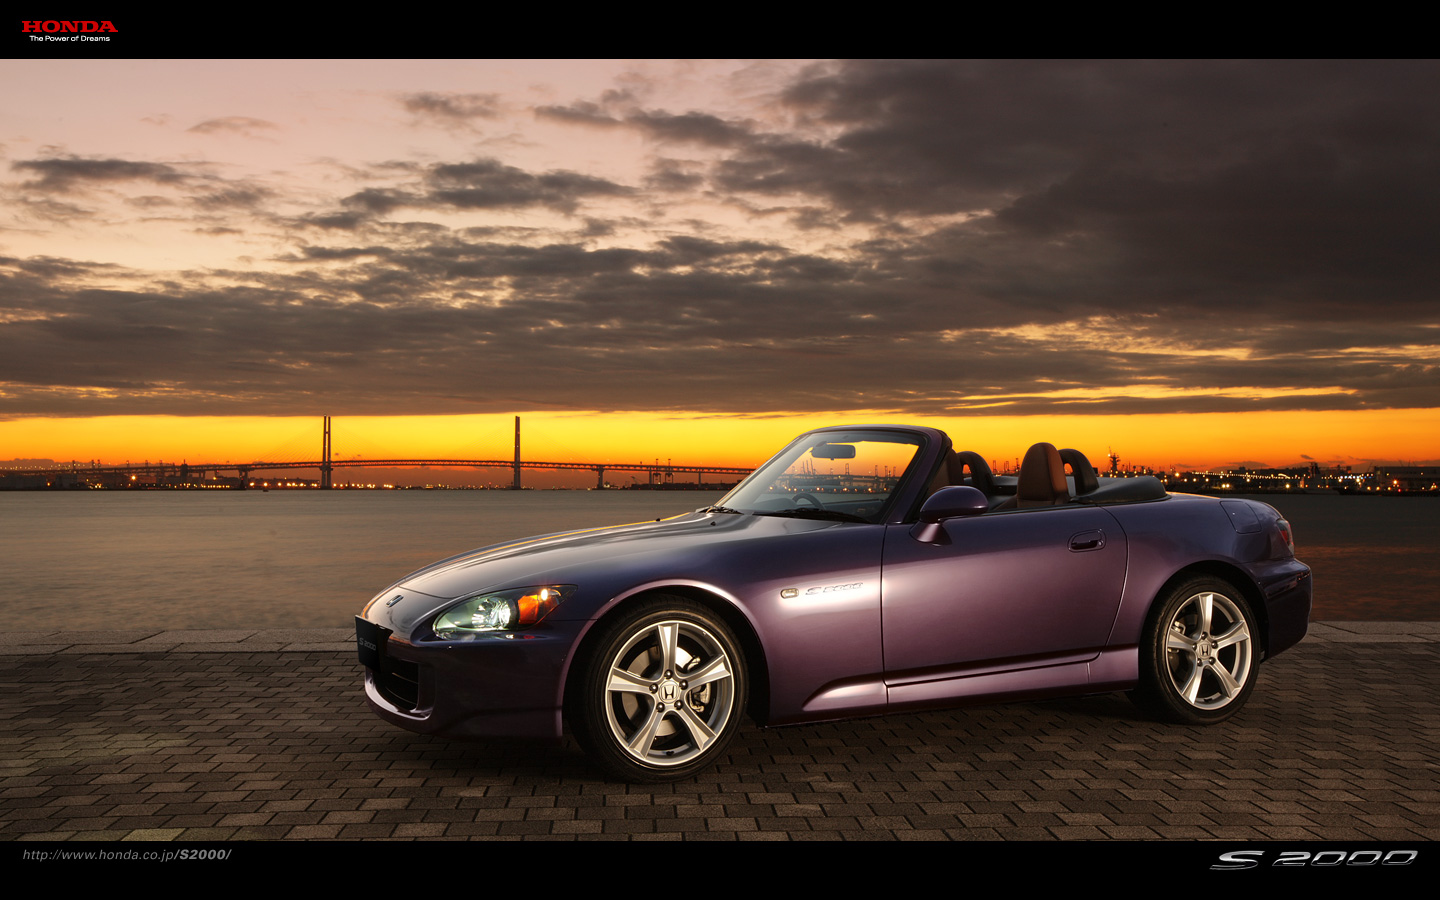 Tom S Honda S2000 Blog Wallpapers